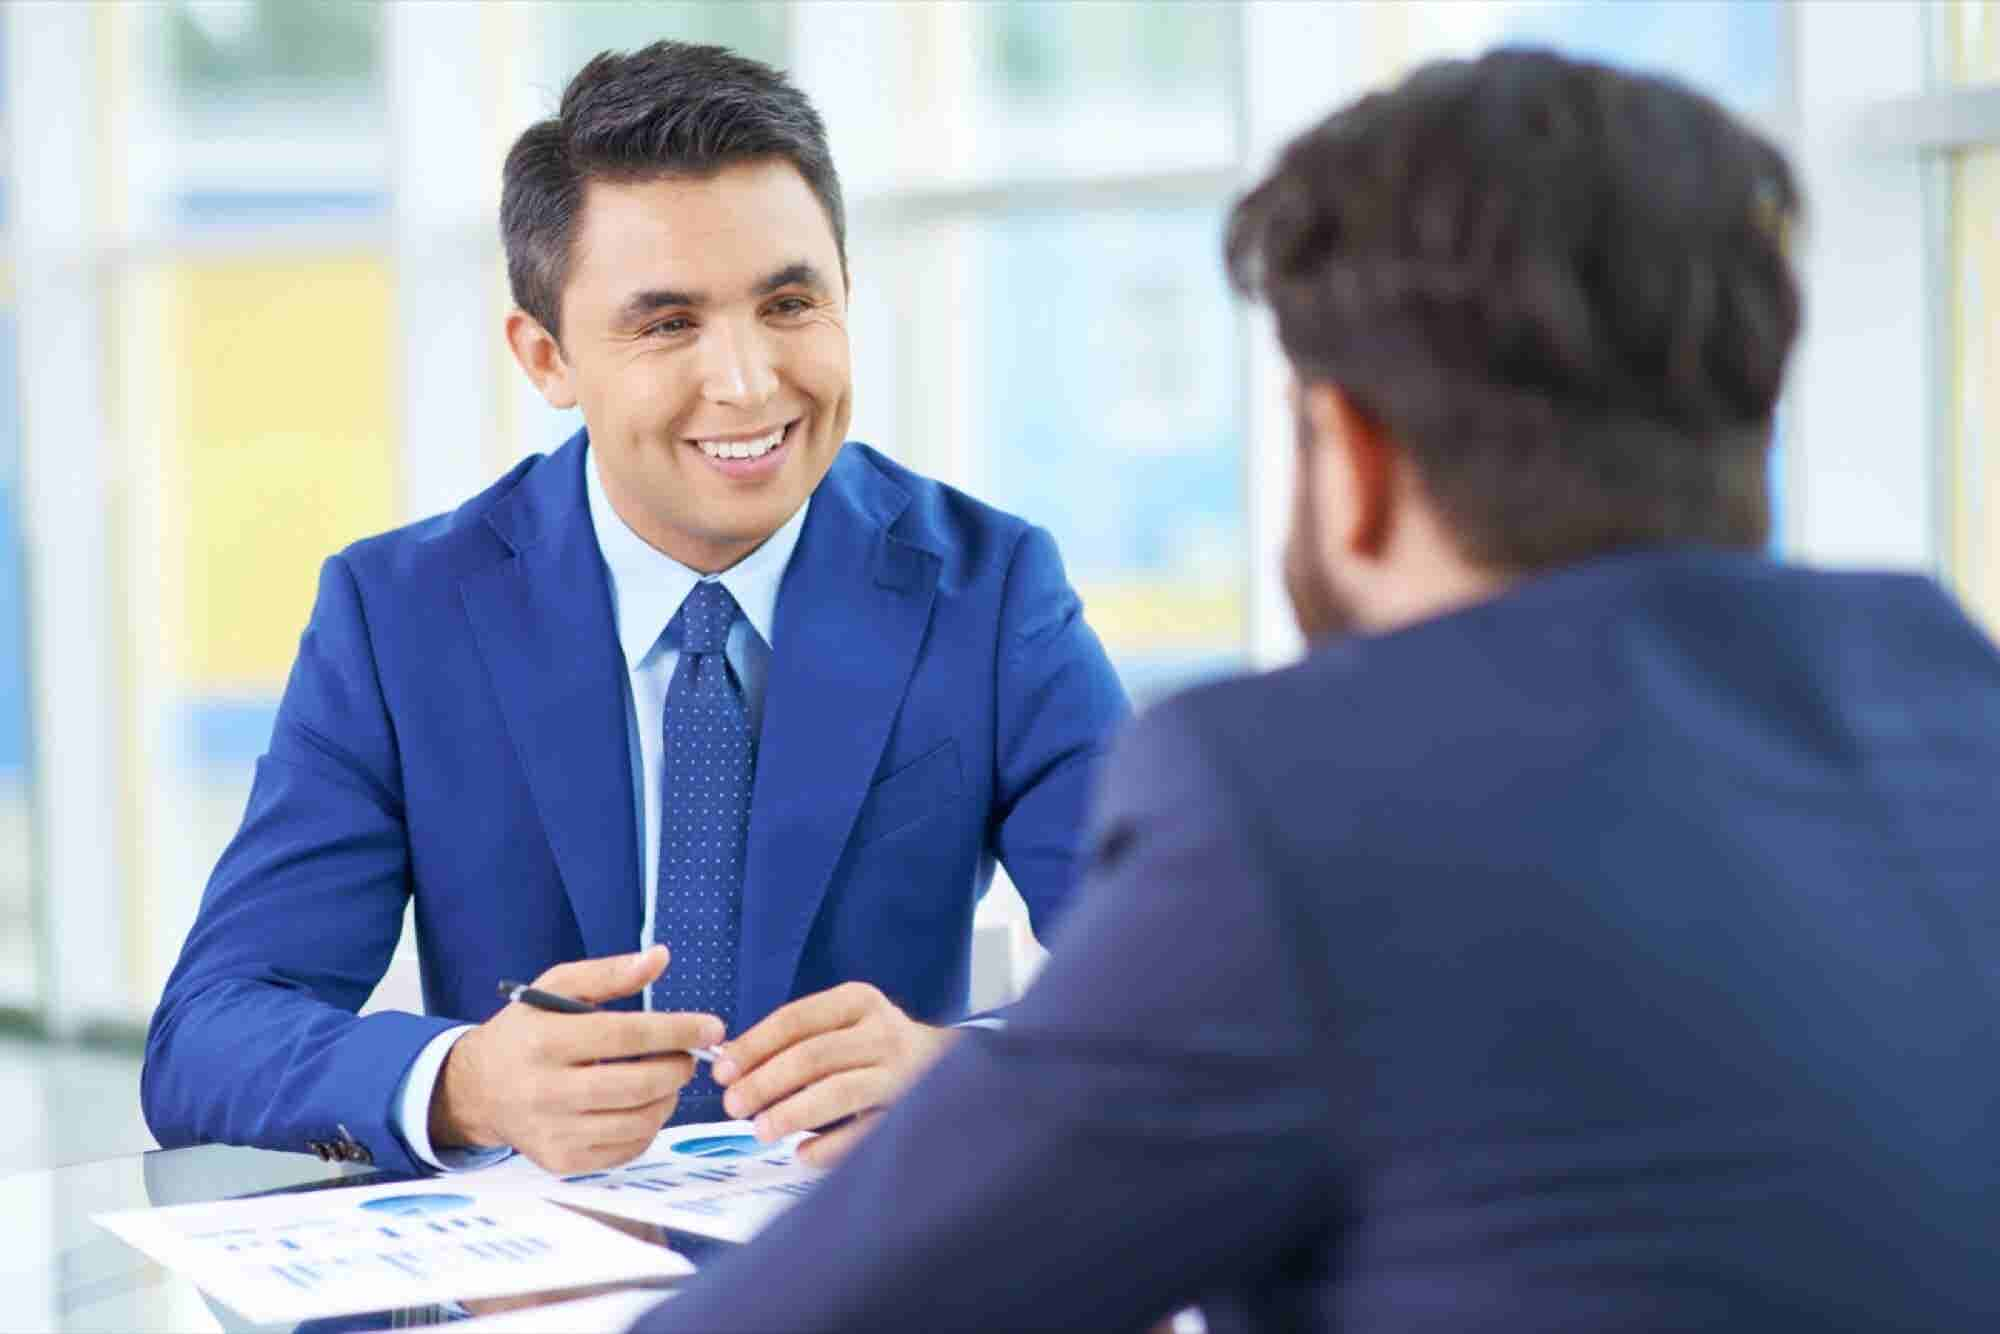 Good Negative Qualities to Say During an Interview